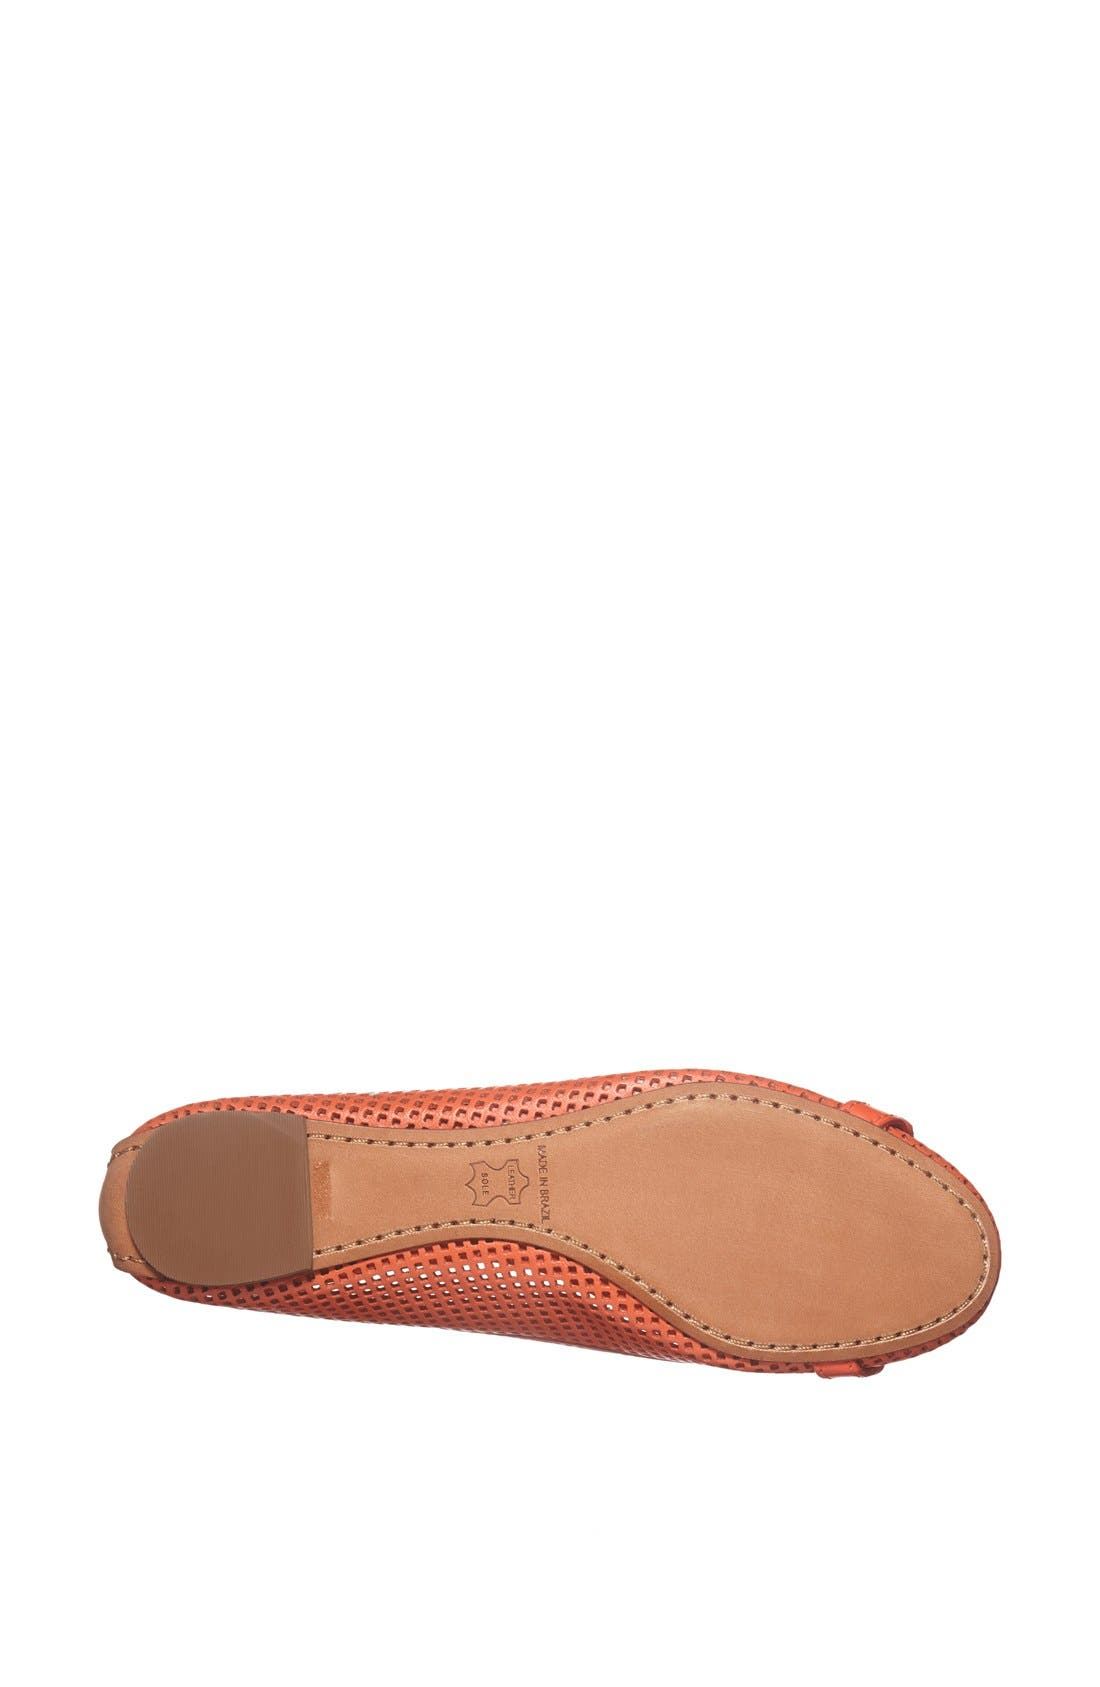 Alternate Image 3  - Tory Burch 'Aaden' Ballet Flat